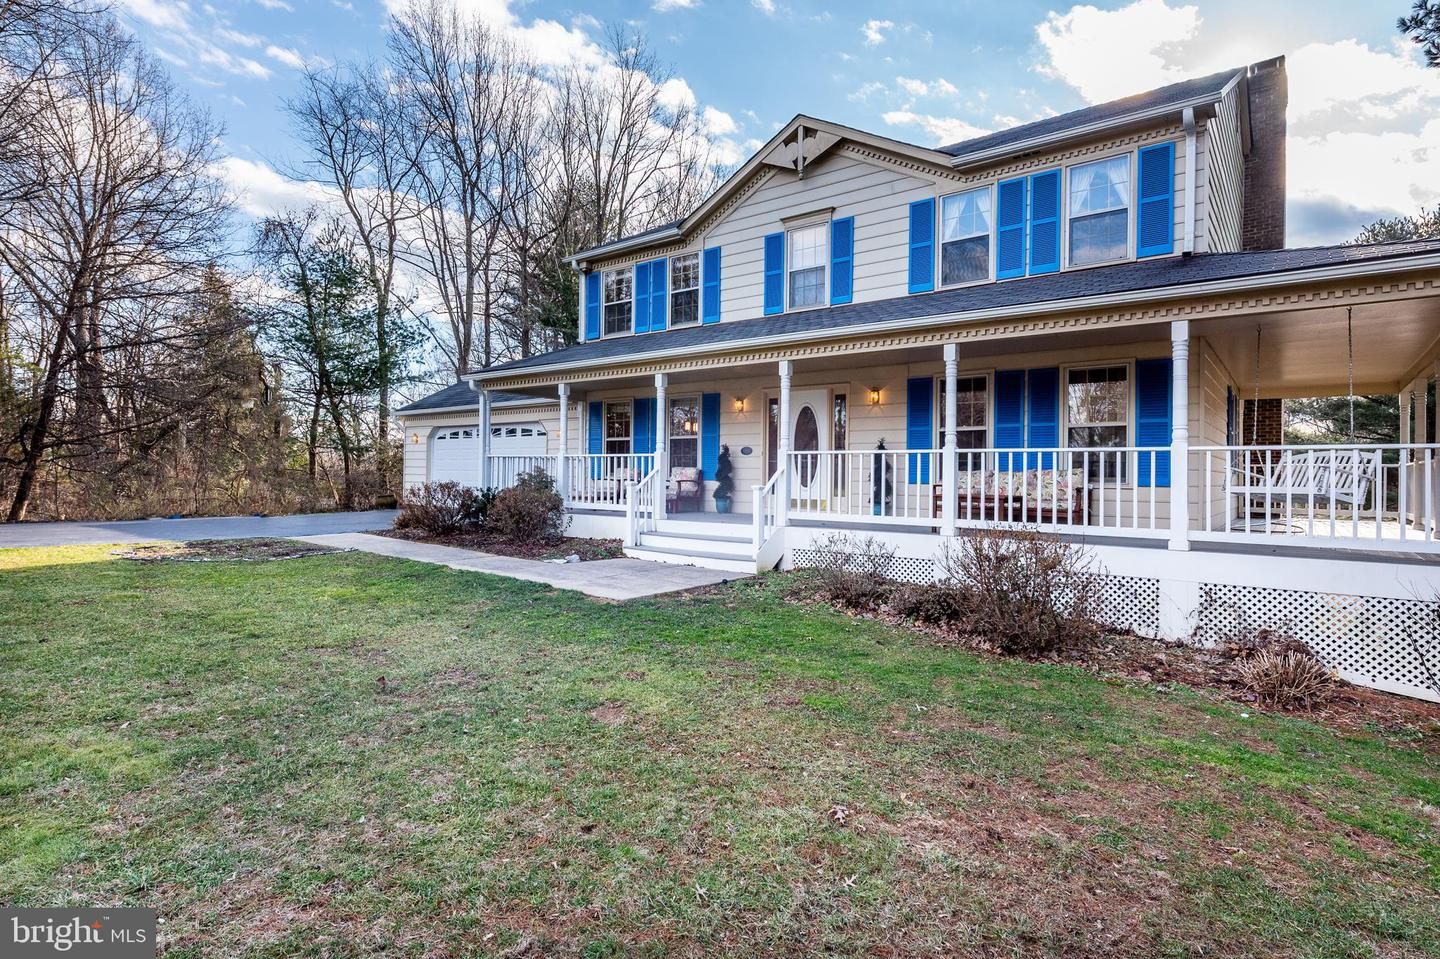 Additional photo for property listing at 1018 Harriman St 1018 Harriman St Great Falls, Virginia 22066 United States